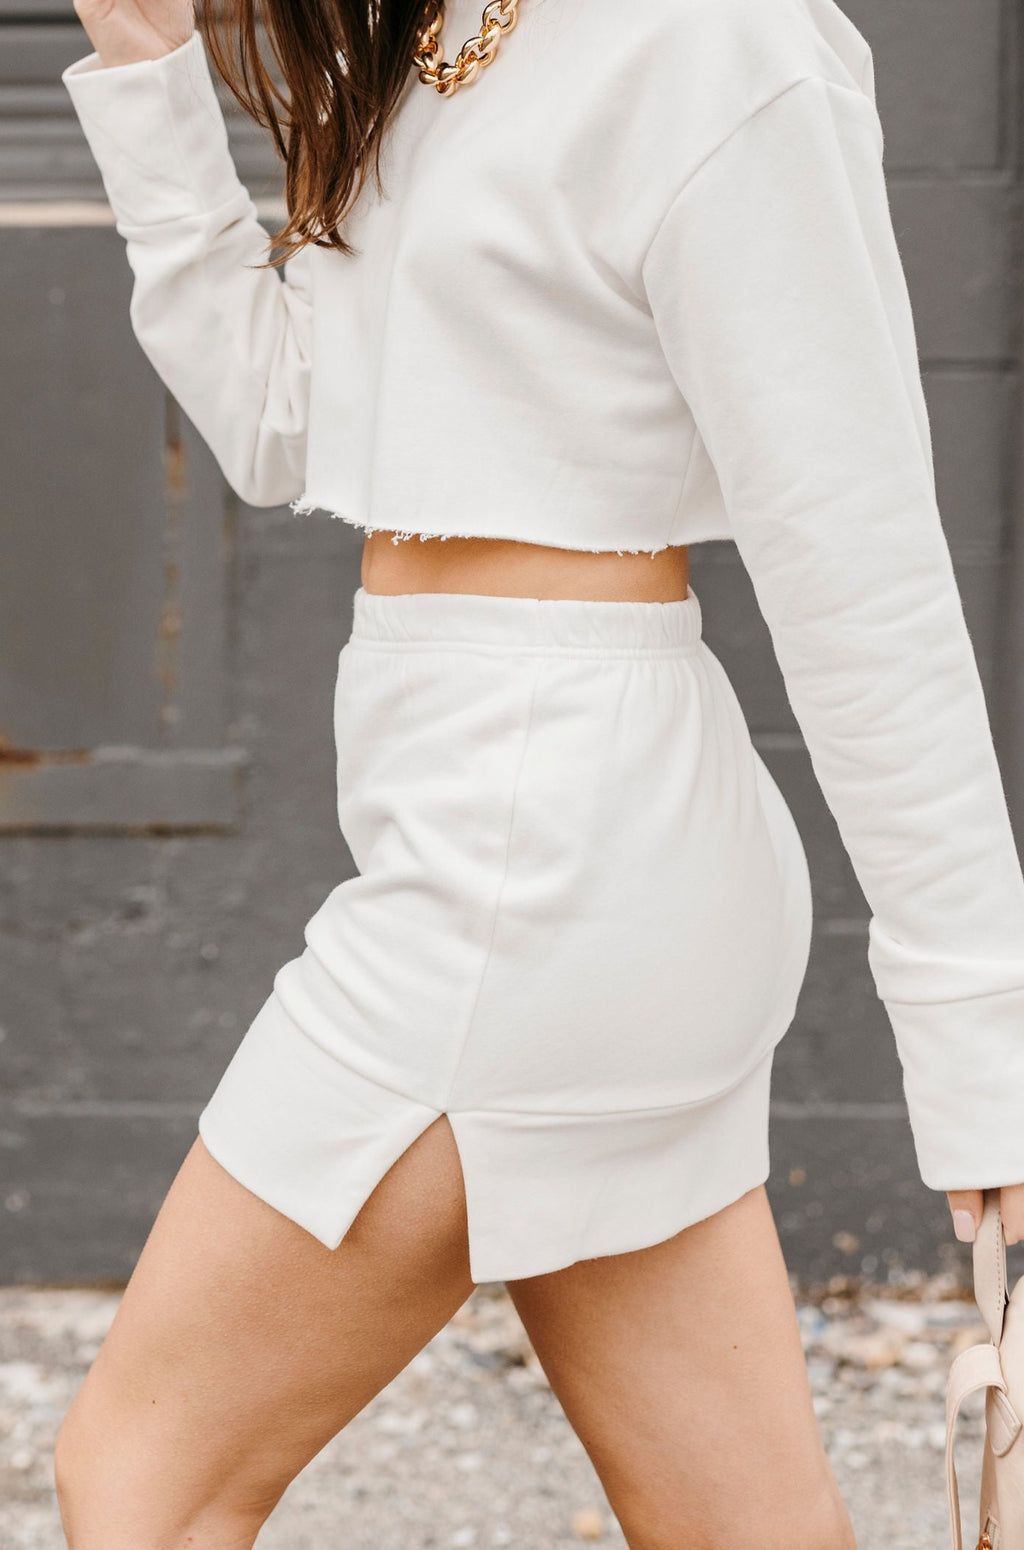 Navy Tie Dyed Layered Cami - FINAL SALE - BluePeppermint Boutique